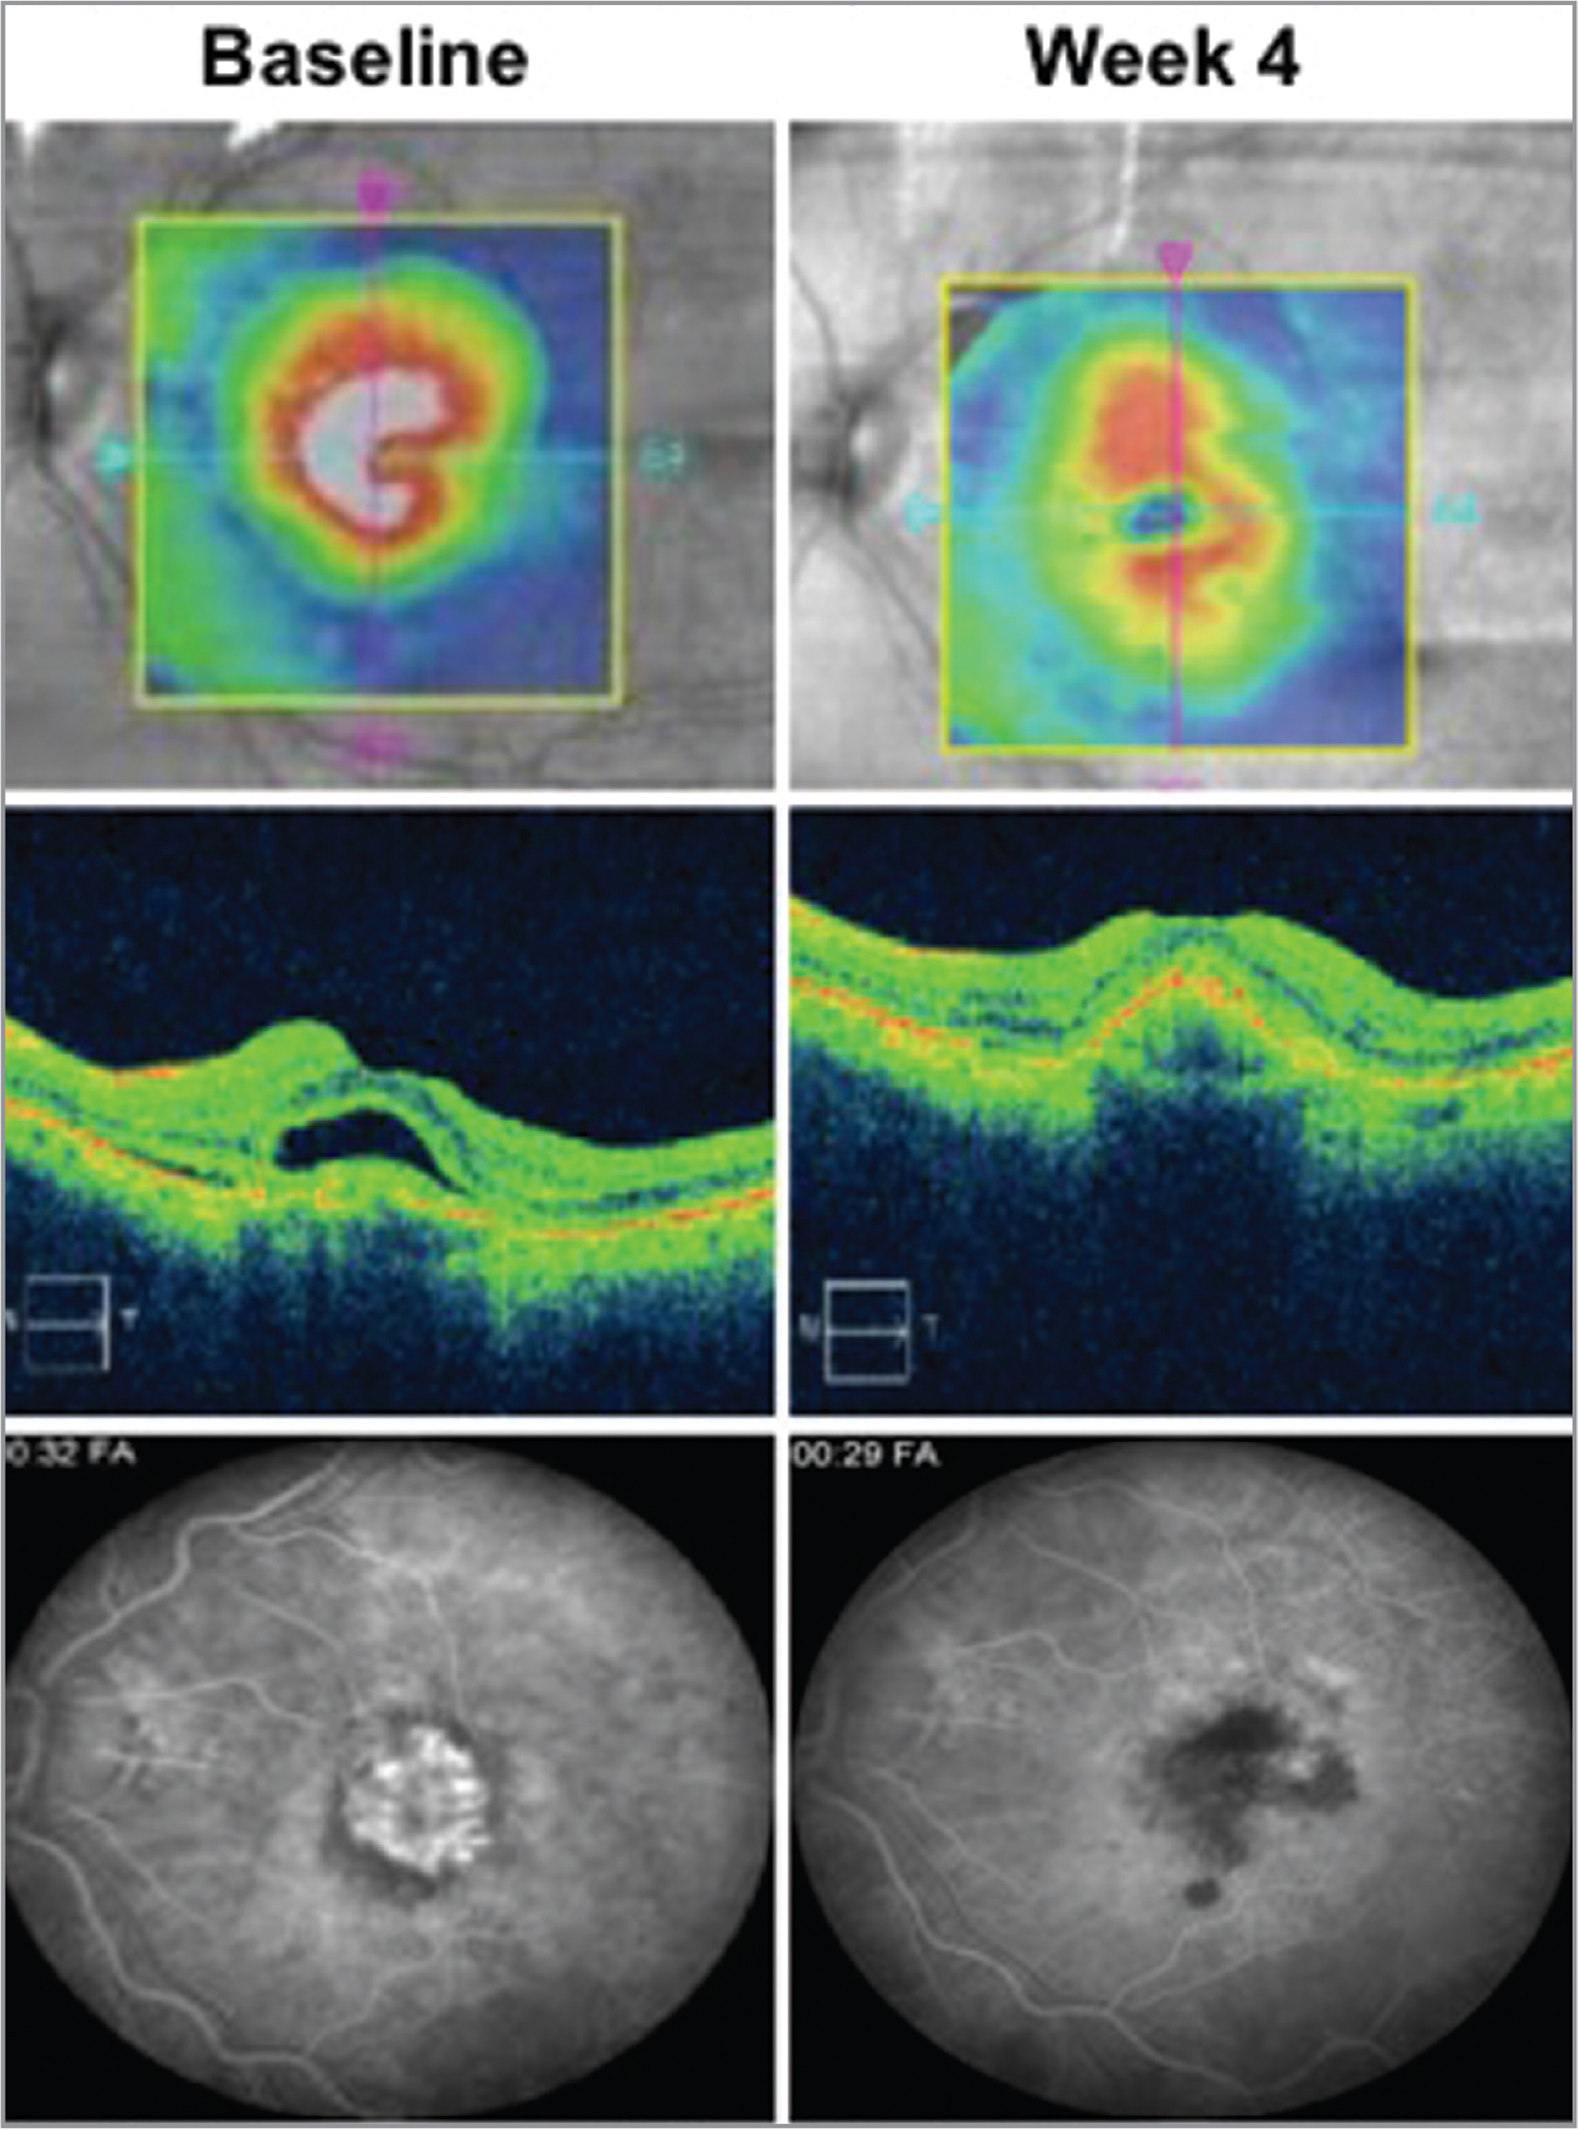 Baseline and outcome measurements in an 83-year-old white female with treatment-naïve neovascular age-related macular degeneration. Baseline (left column) and 4 weeks post-study drug (right column) showing top, middle (optical coherence tomography), and bottom (fluorescein angiography). Baseline best-corrected visual acuity (BCVA) was 58 letters and central retinal thickness of 467 μm, Week 4: BCVA +11 letters, optical coherence tomography −175 μm.